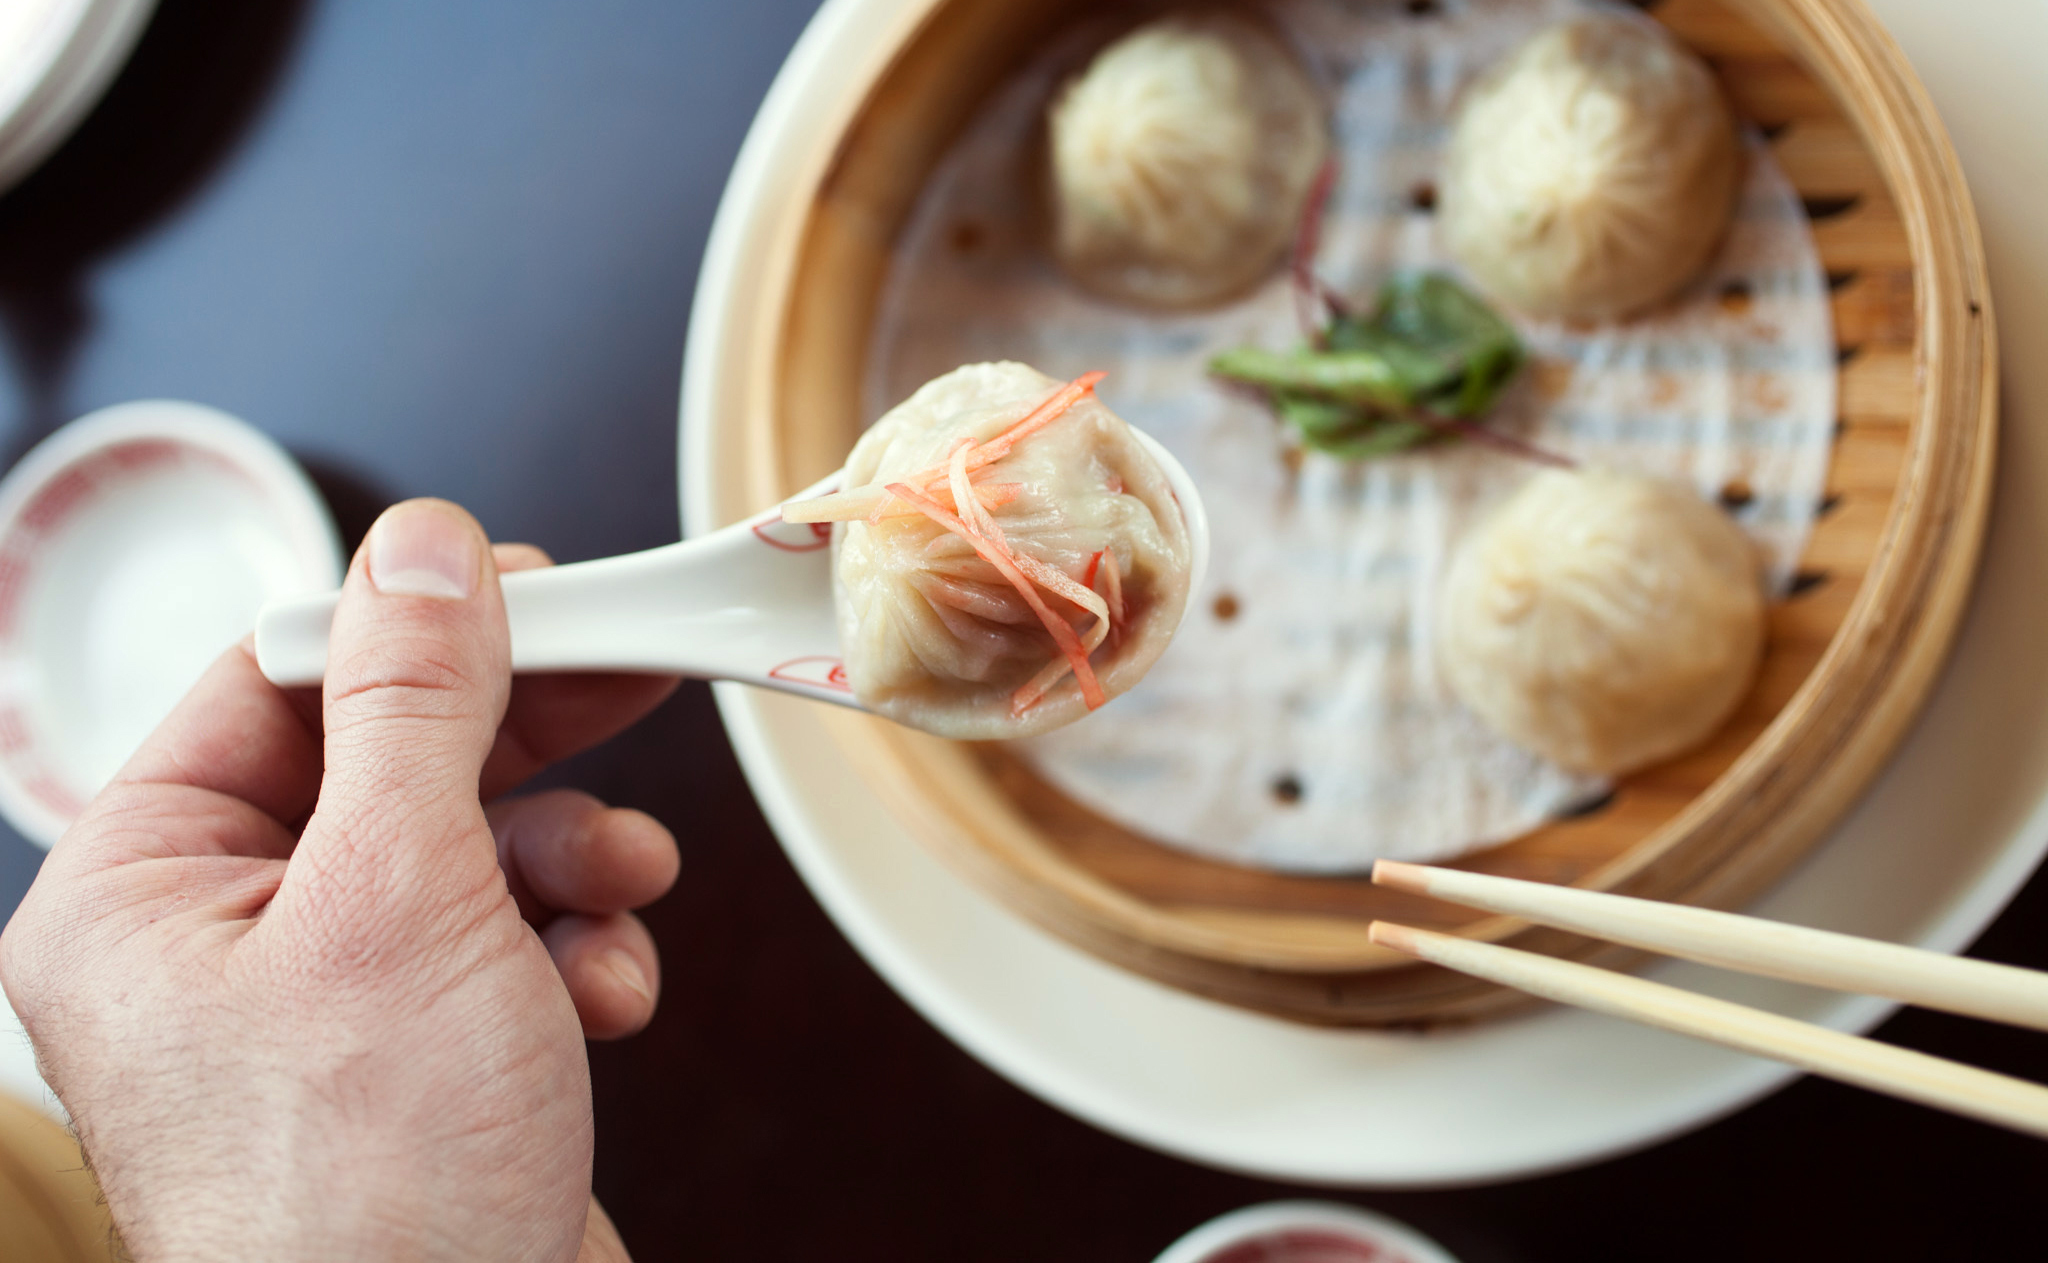 The 100 best dishes and drinks in Chicago 2014